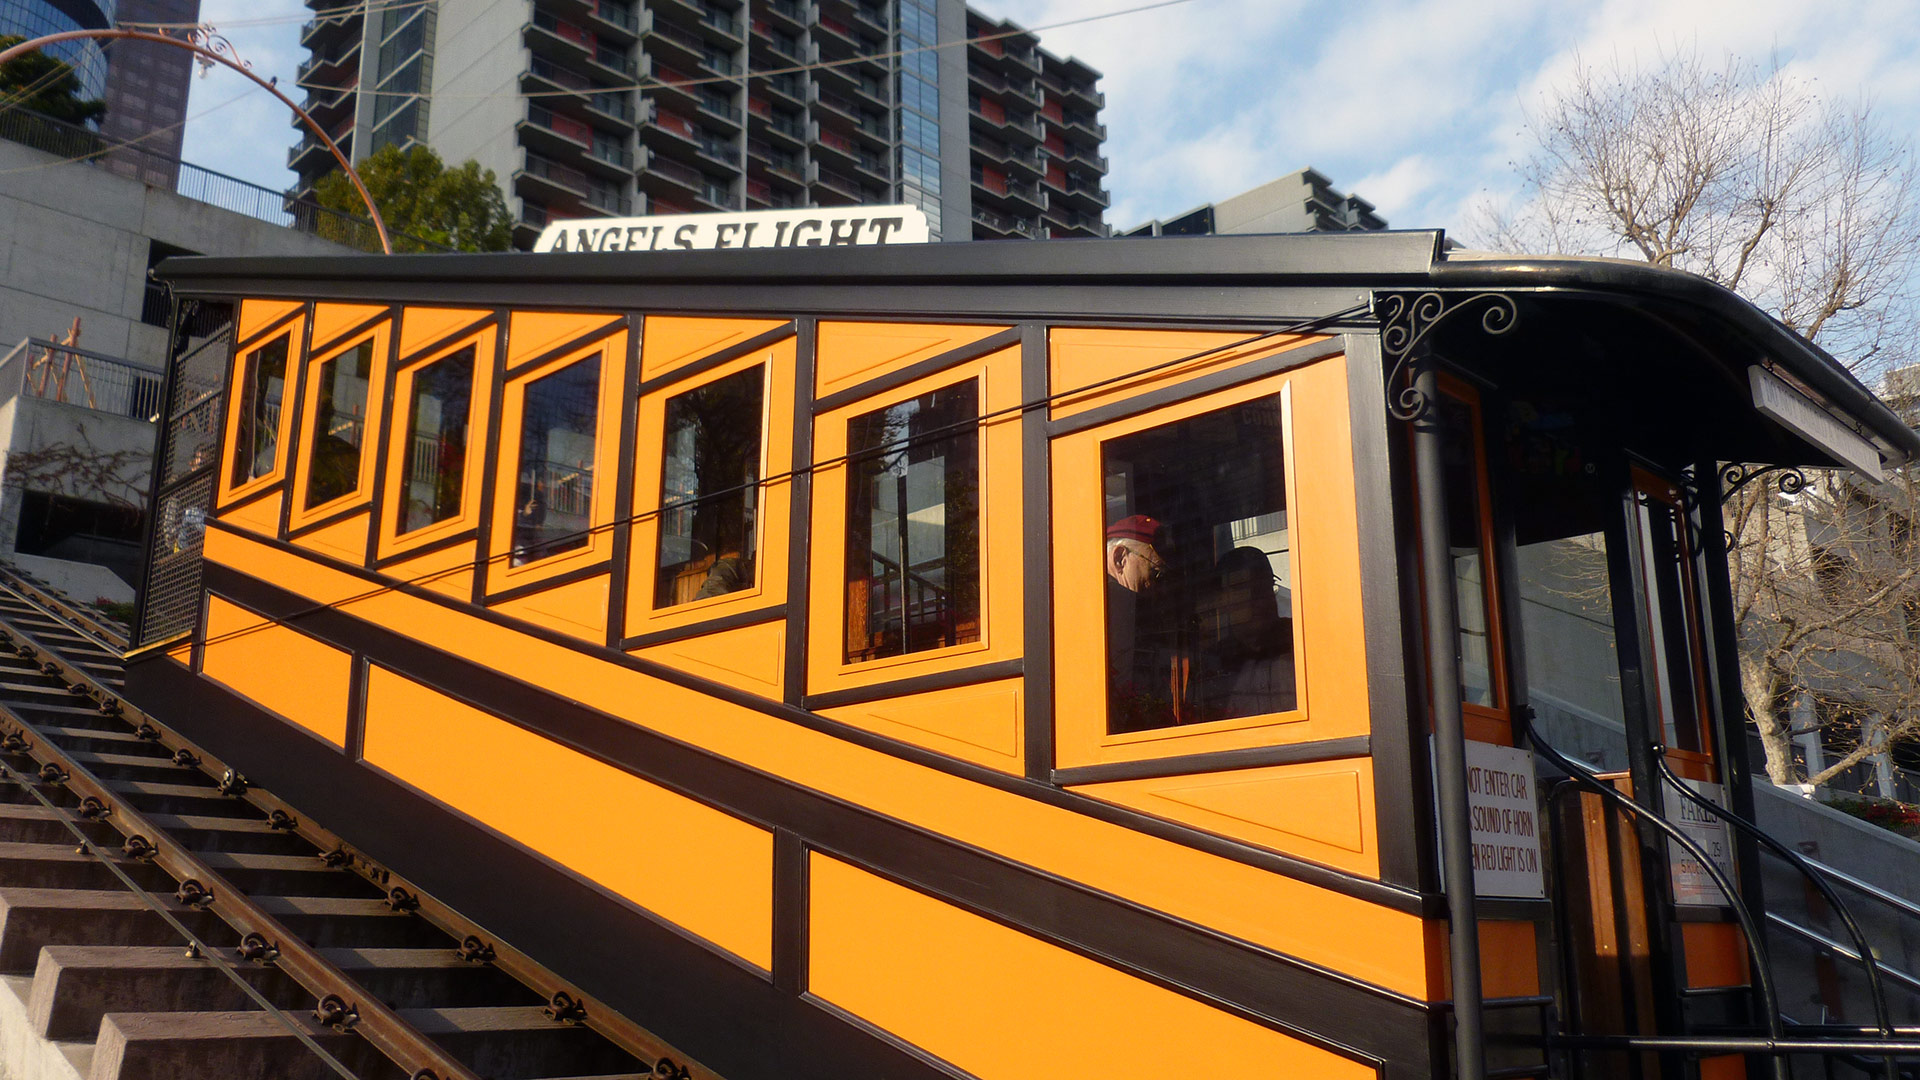 An Angels Flight railcar | Sandi Hammerlein